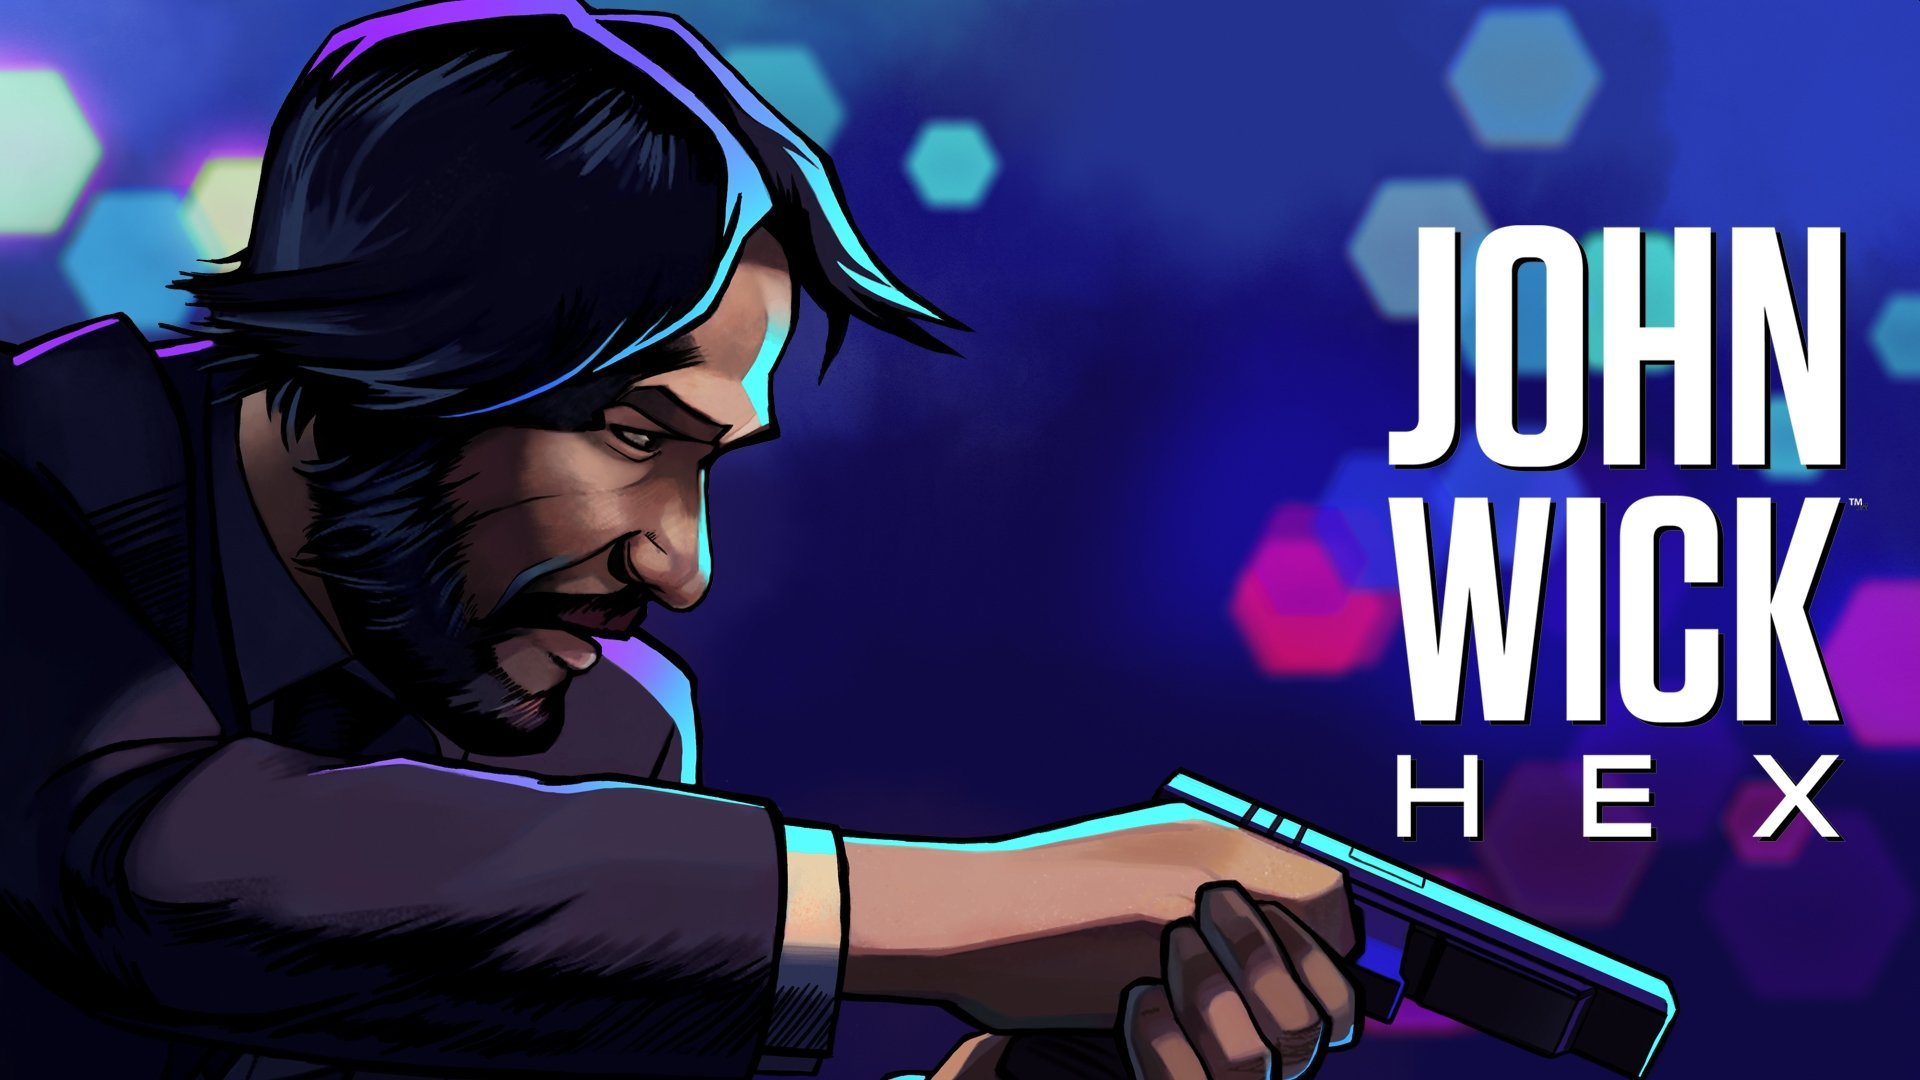 John Wick Hex Takes The Fight To PC, Xbox One, And Nintendo Switch This December